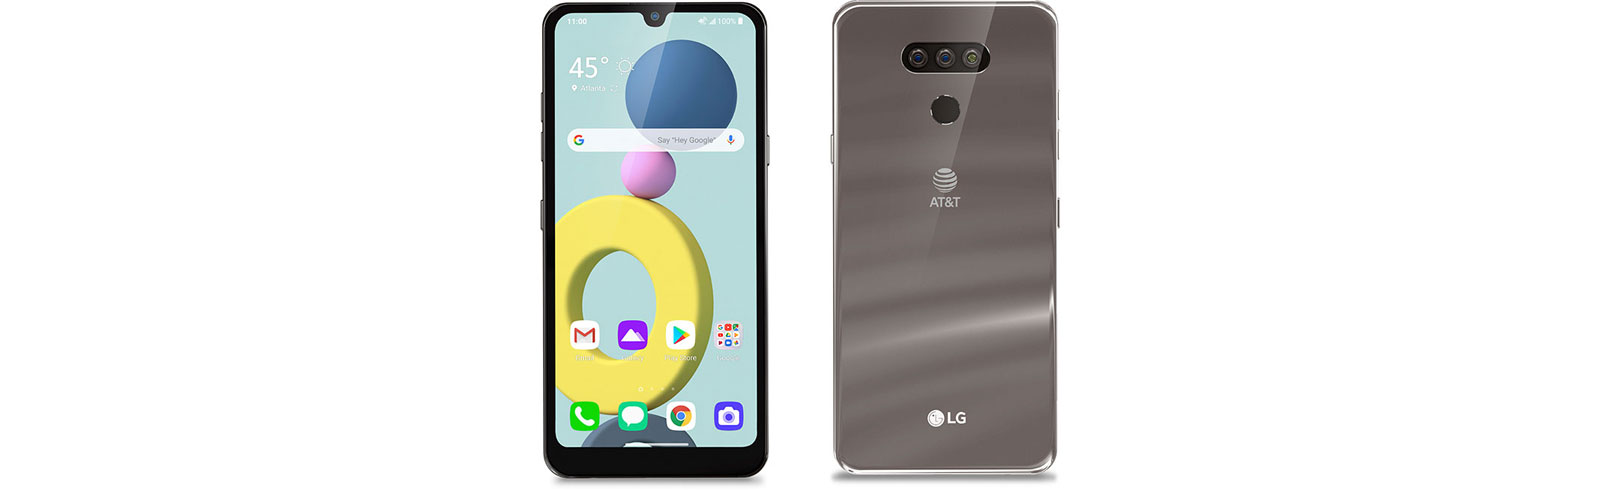 LG Xpress Plus 3 launched in the USA via AT&T